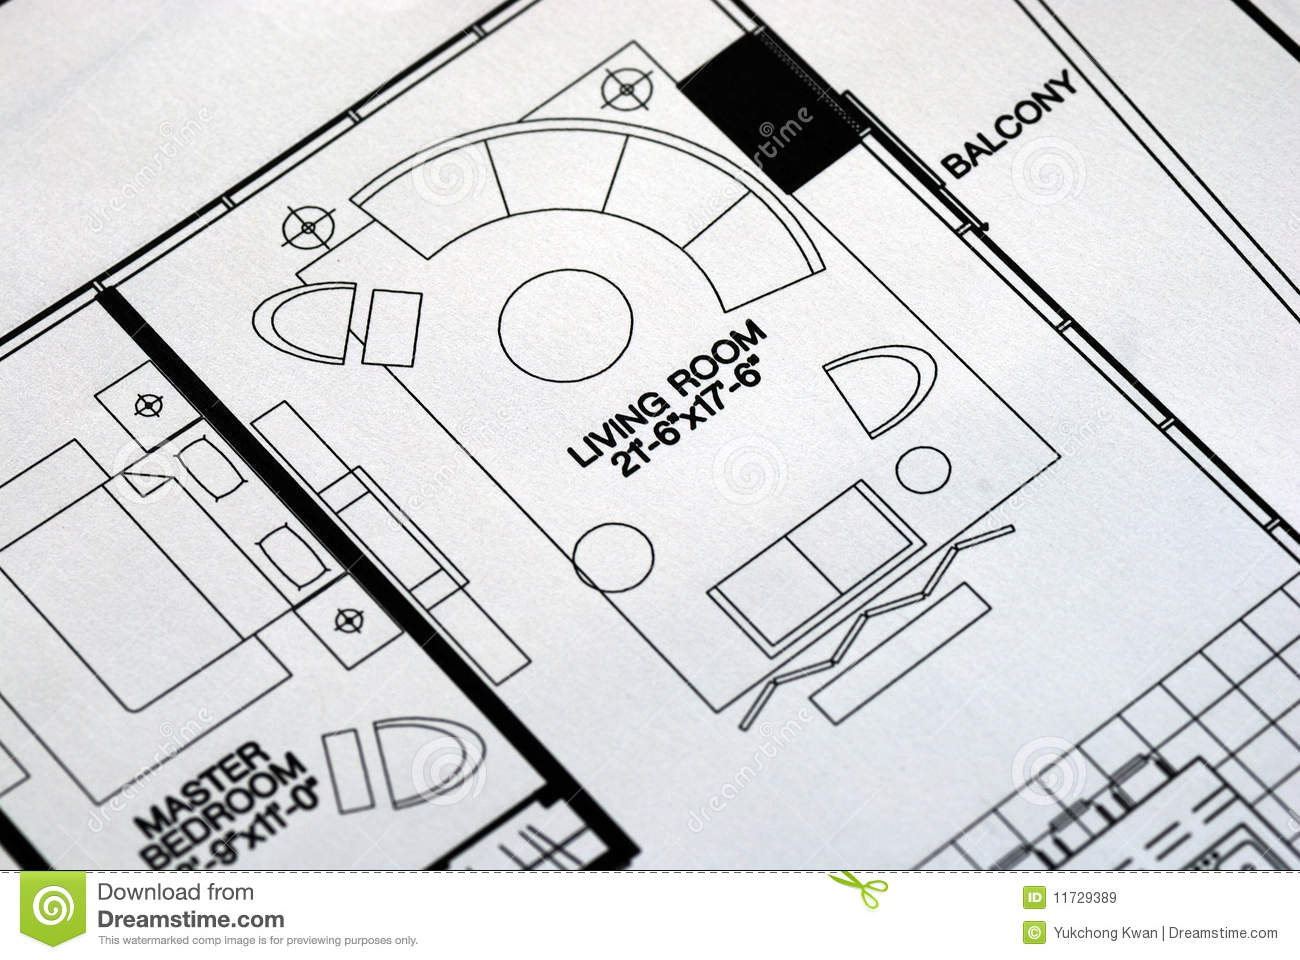 Living Room Floor Plans: A Floor Plan Focused On The Living Room Stock Image